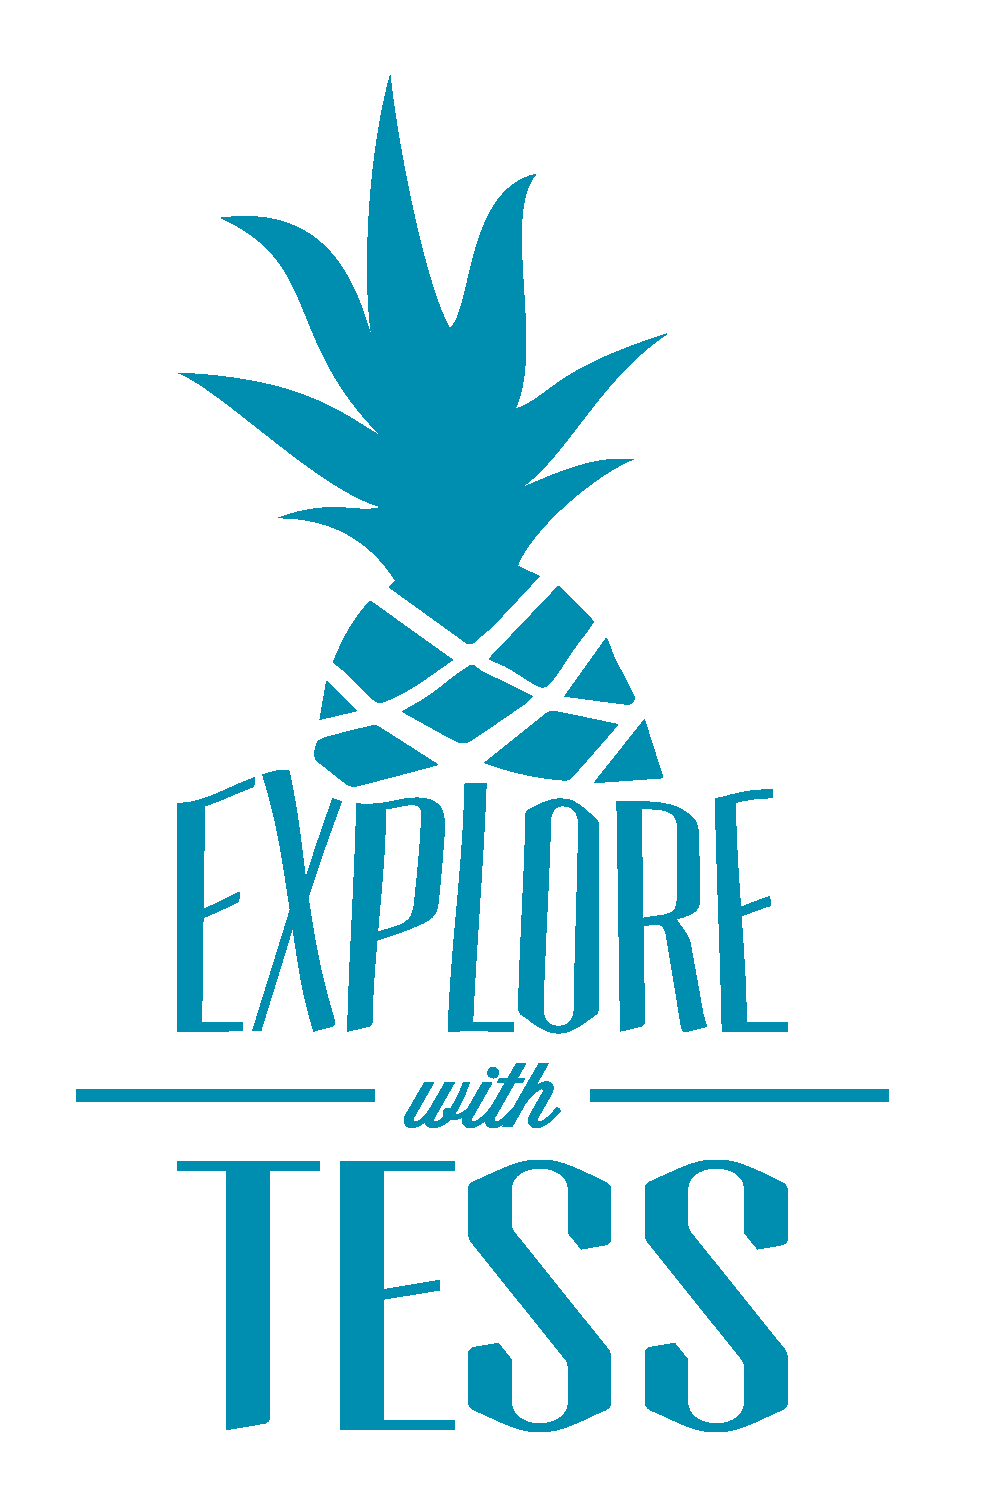 Explore with Tess Logo